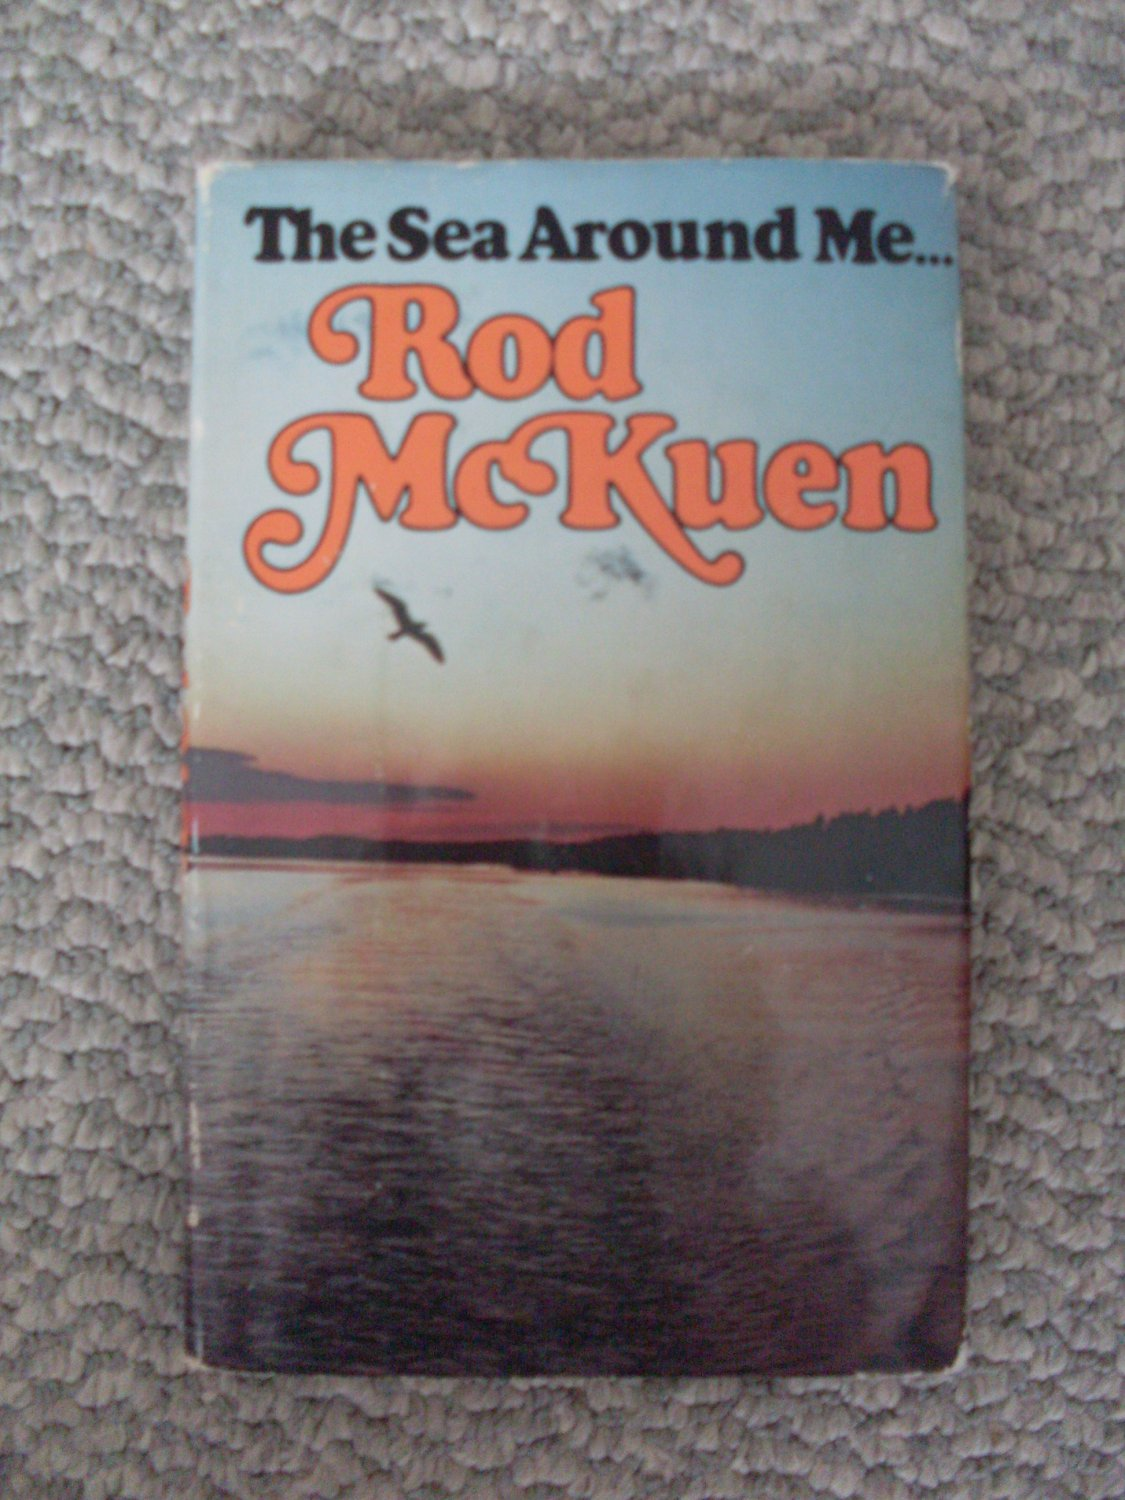 1977 HC Poetry Book Rod McKuen The Sea Around Me